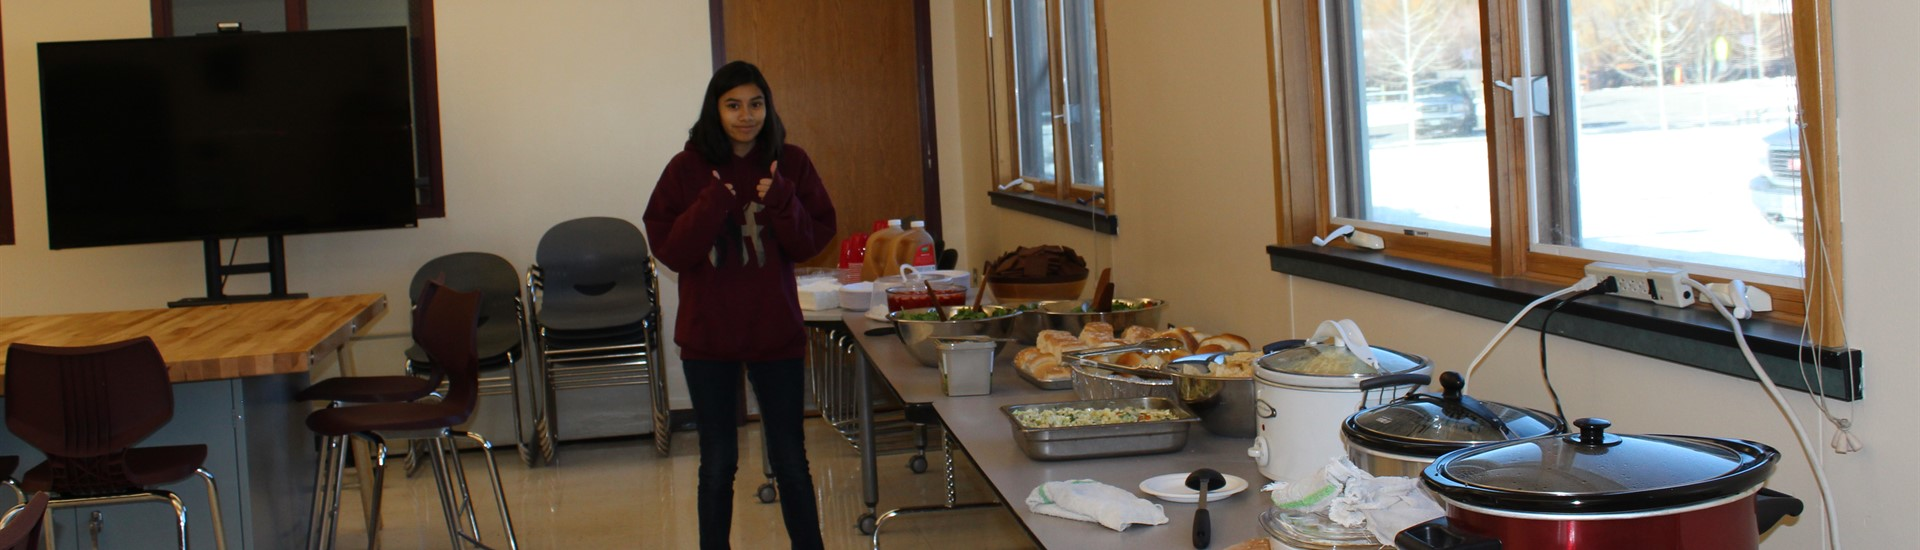 Summit student puts finishing touches on lunch buffet